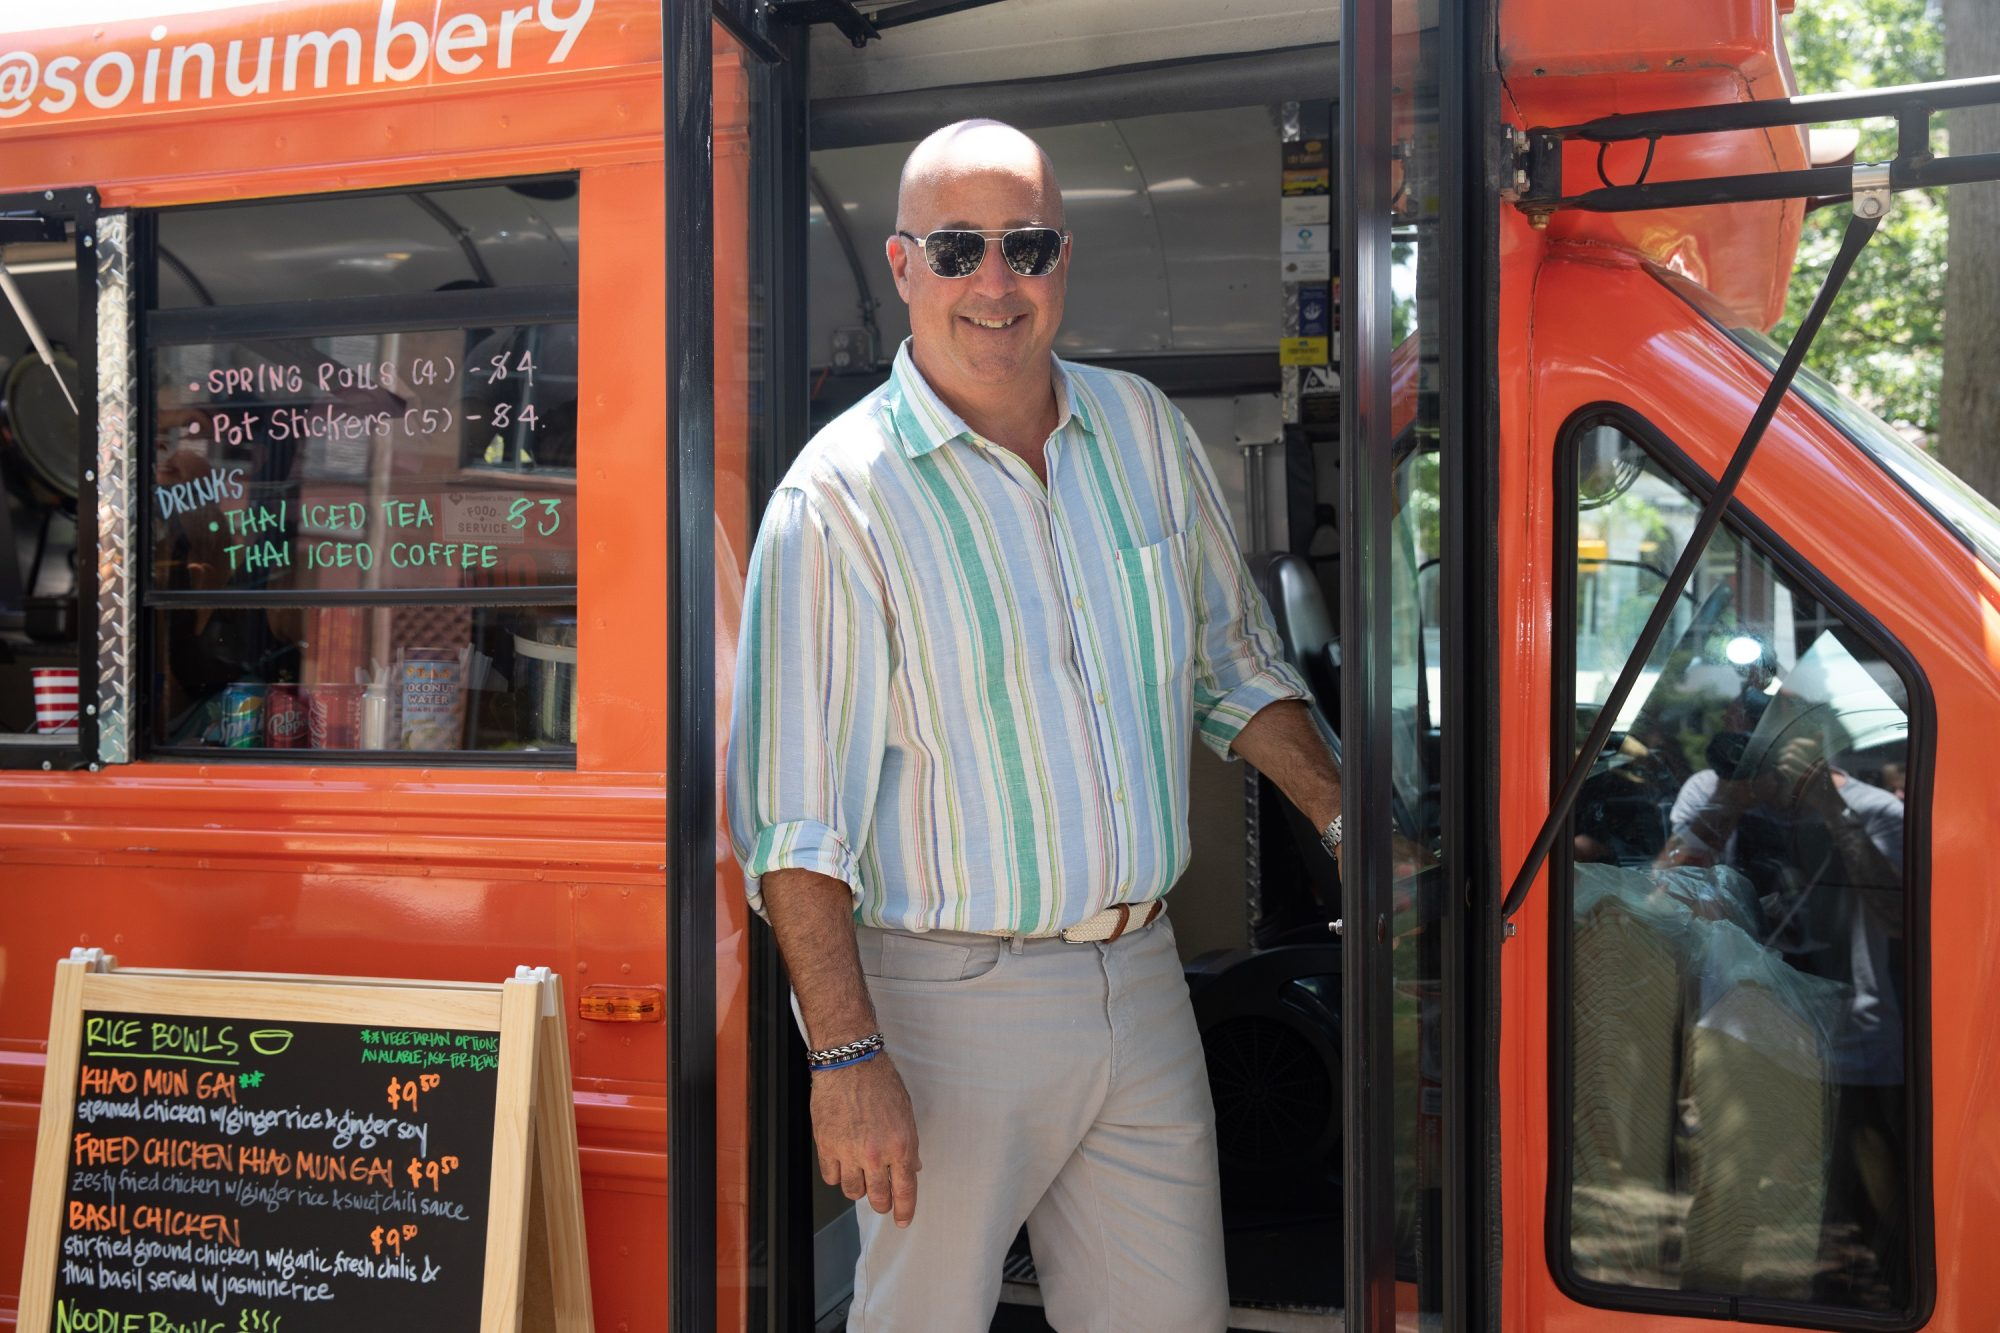 andrew-zimmern-big-food-truck-tip-FT-BLOG0818.jpeg